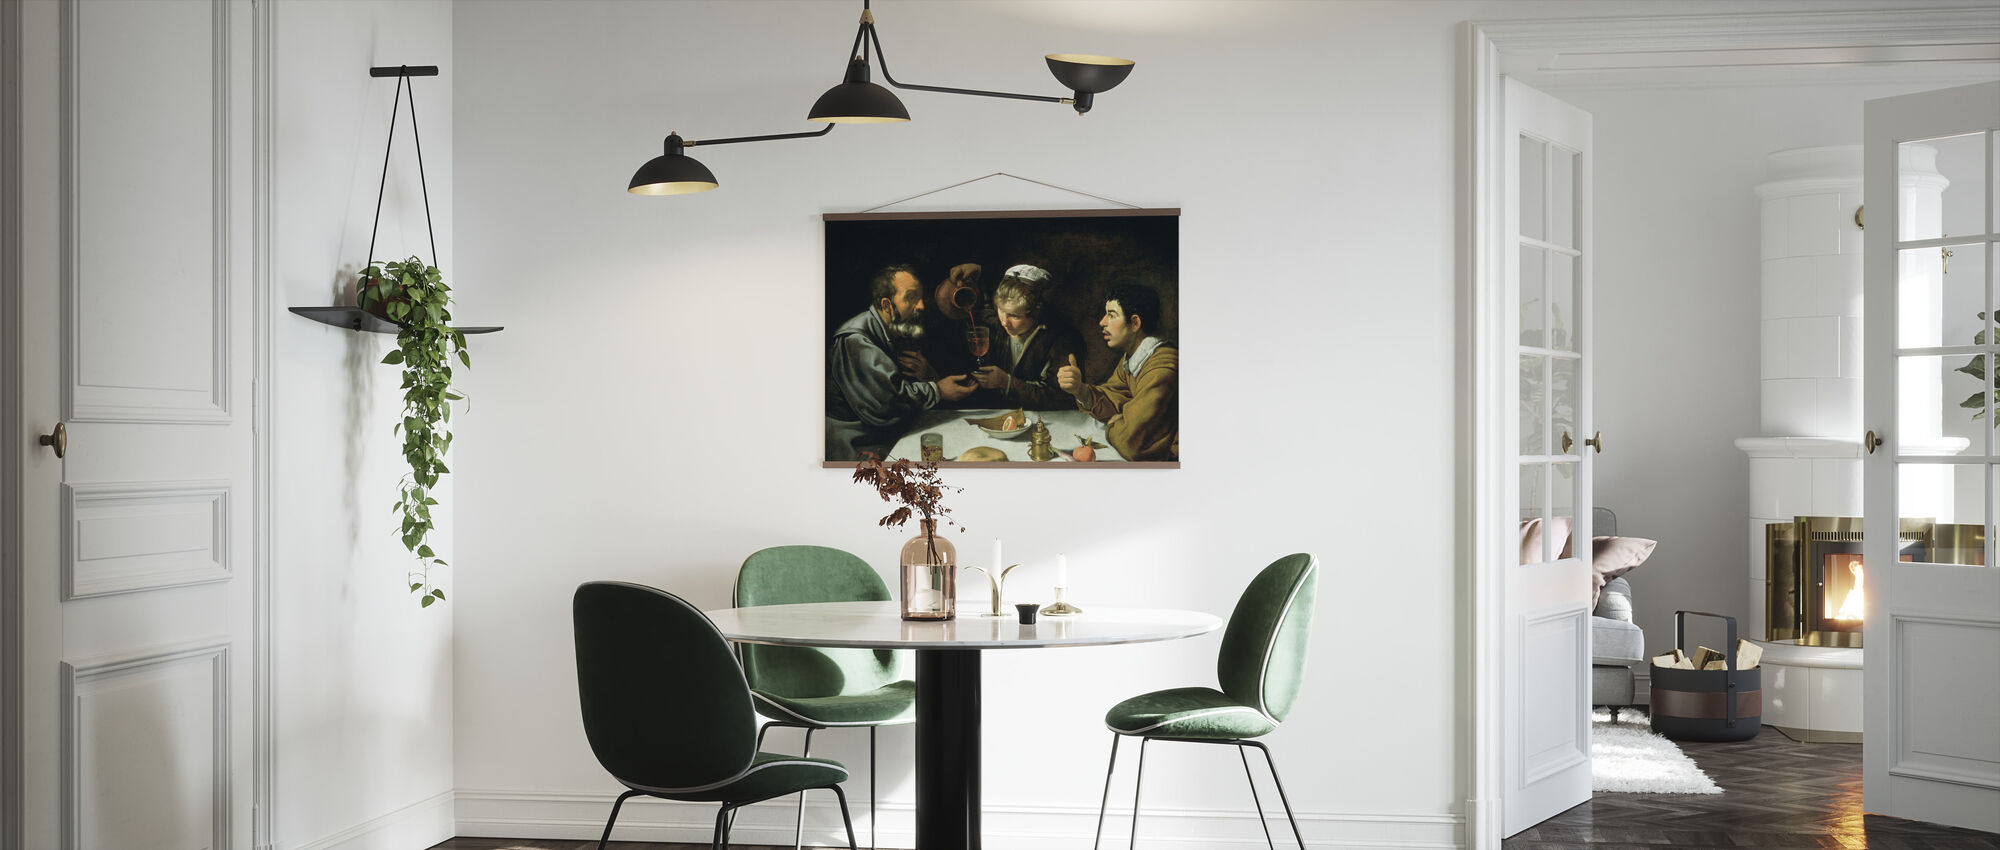 Lunch - Diego Velasquez - Poster - Kitchen